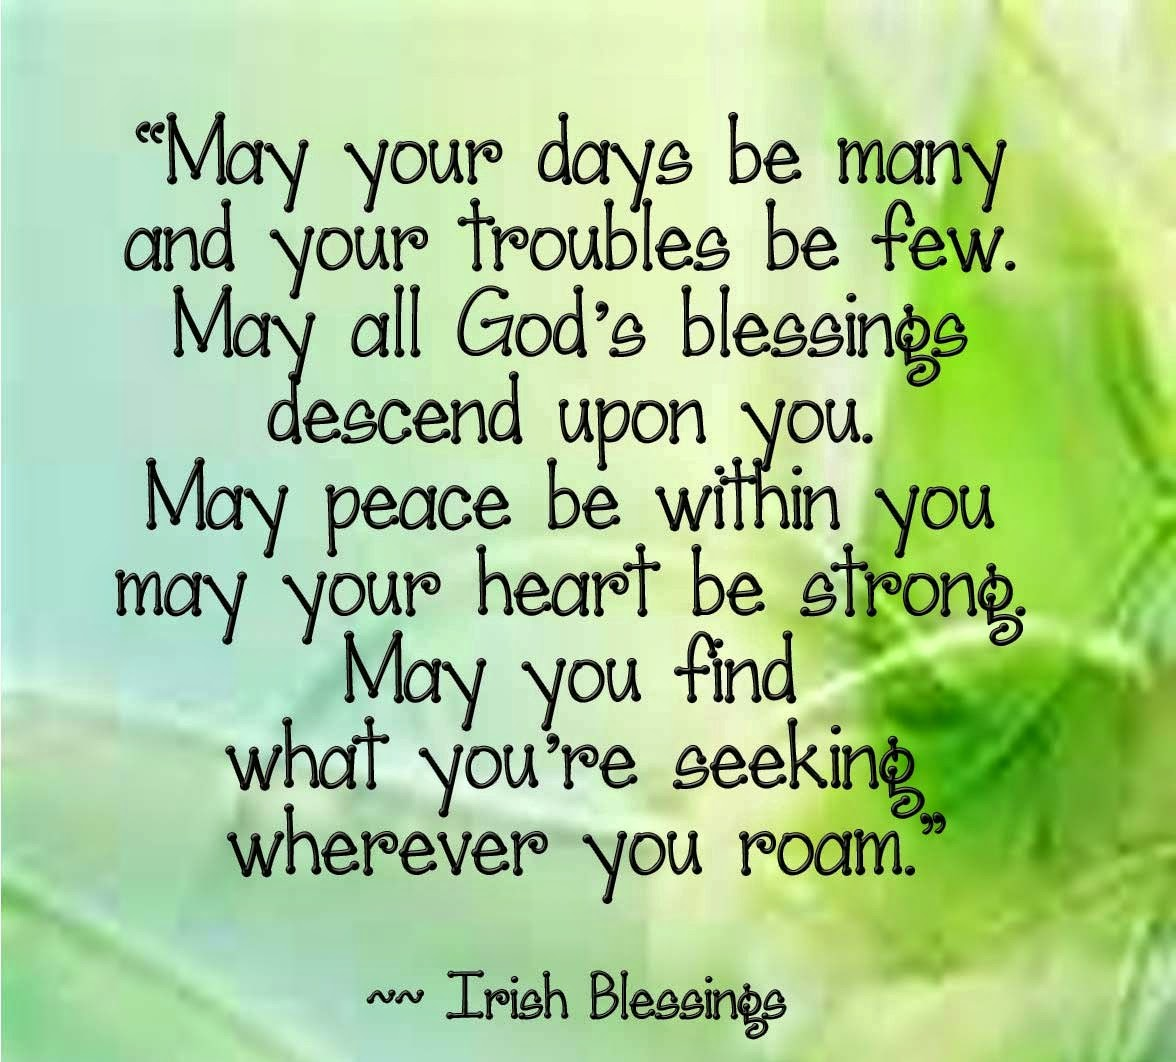 Blessings Quotes: In Plain English ...: IRISH BLESSINGS